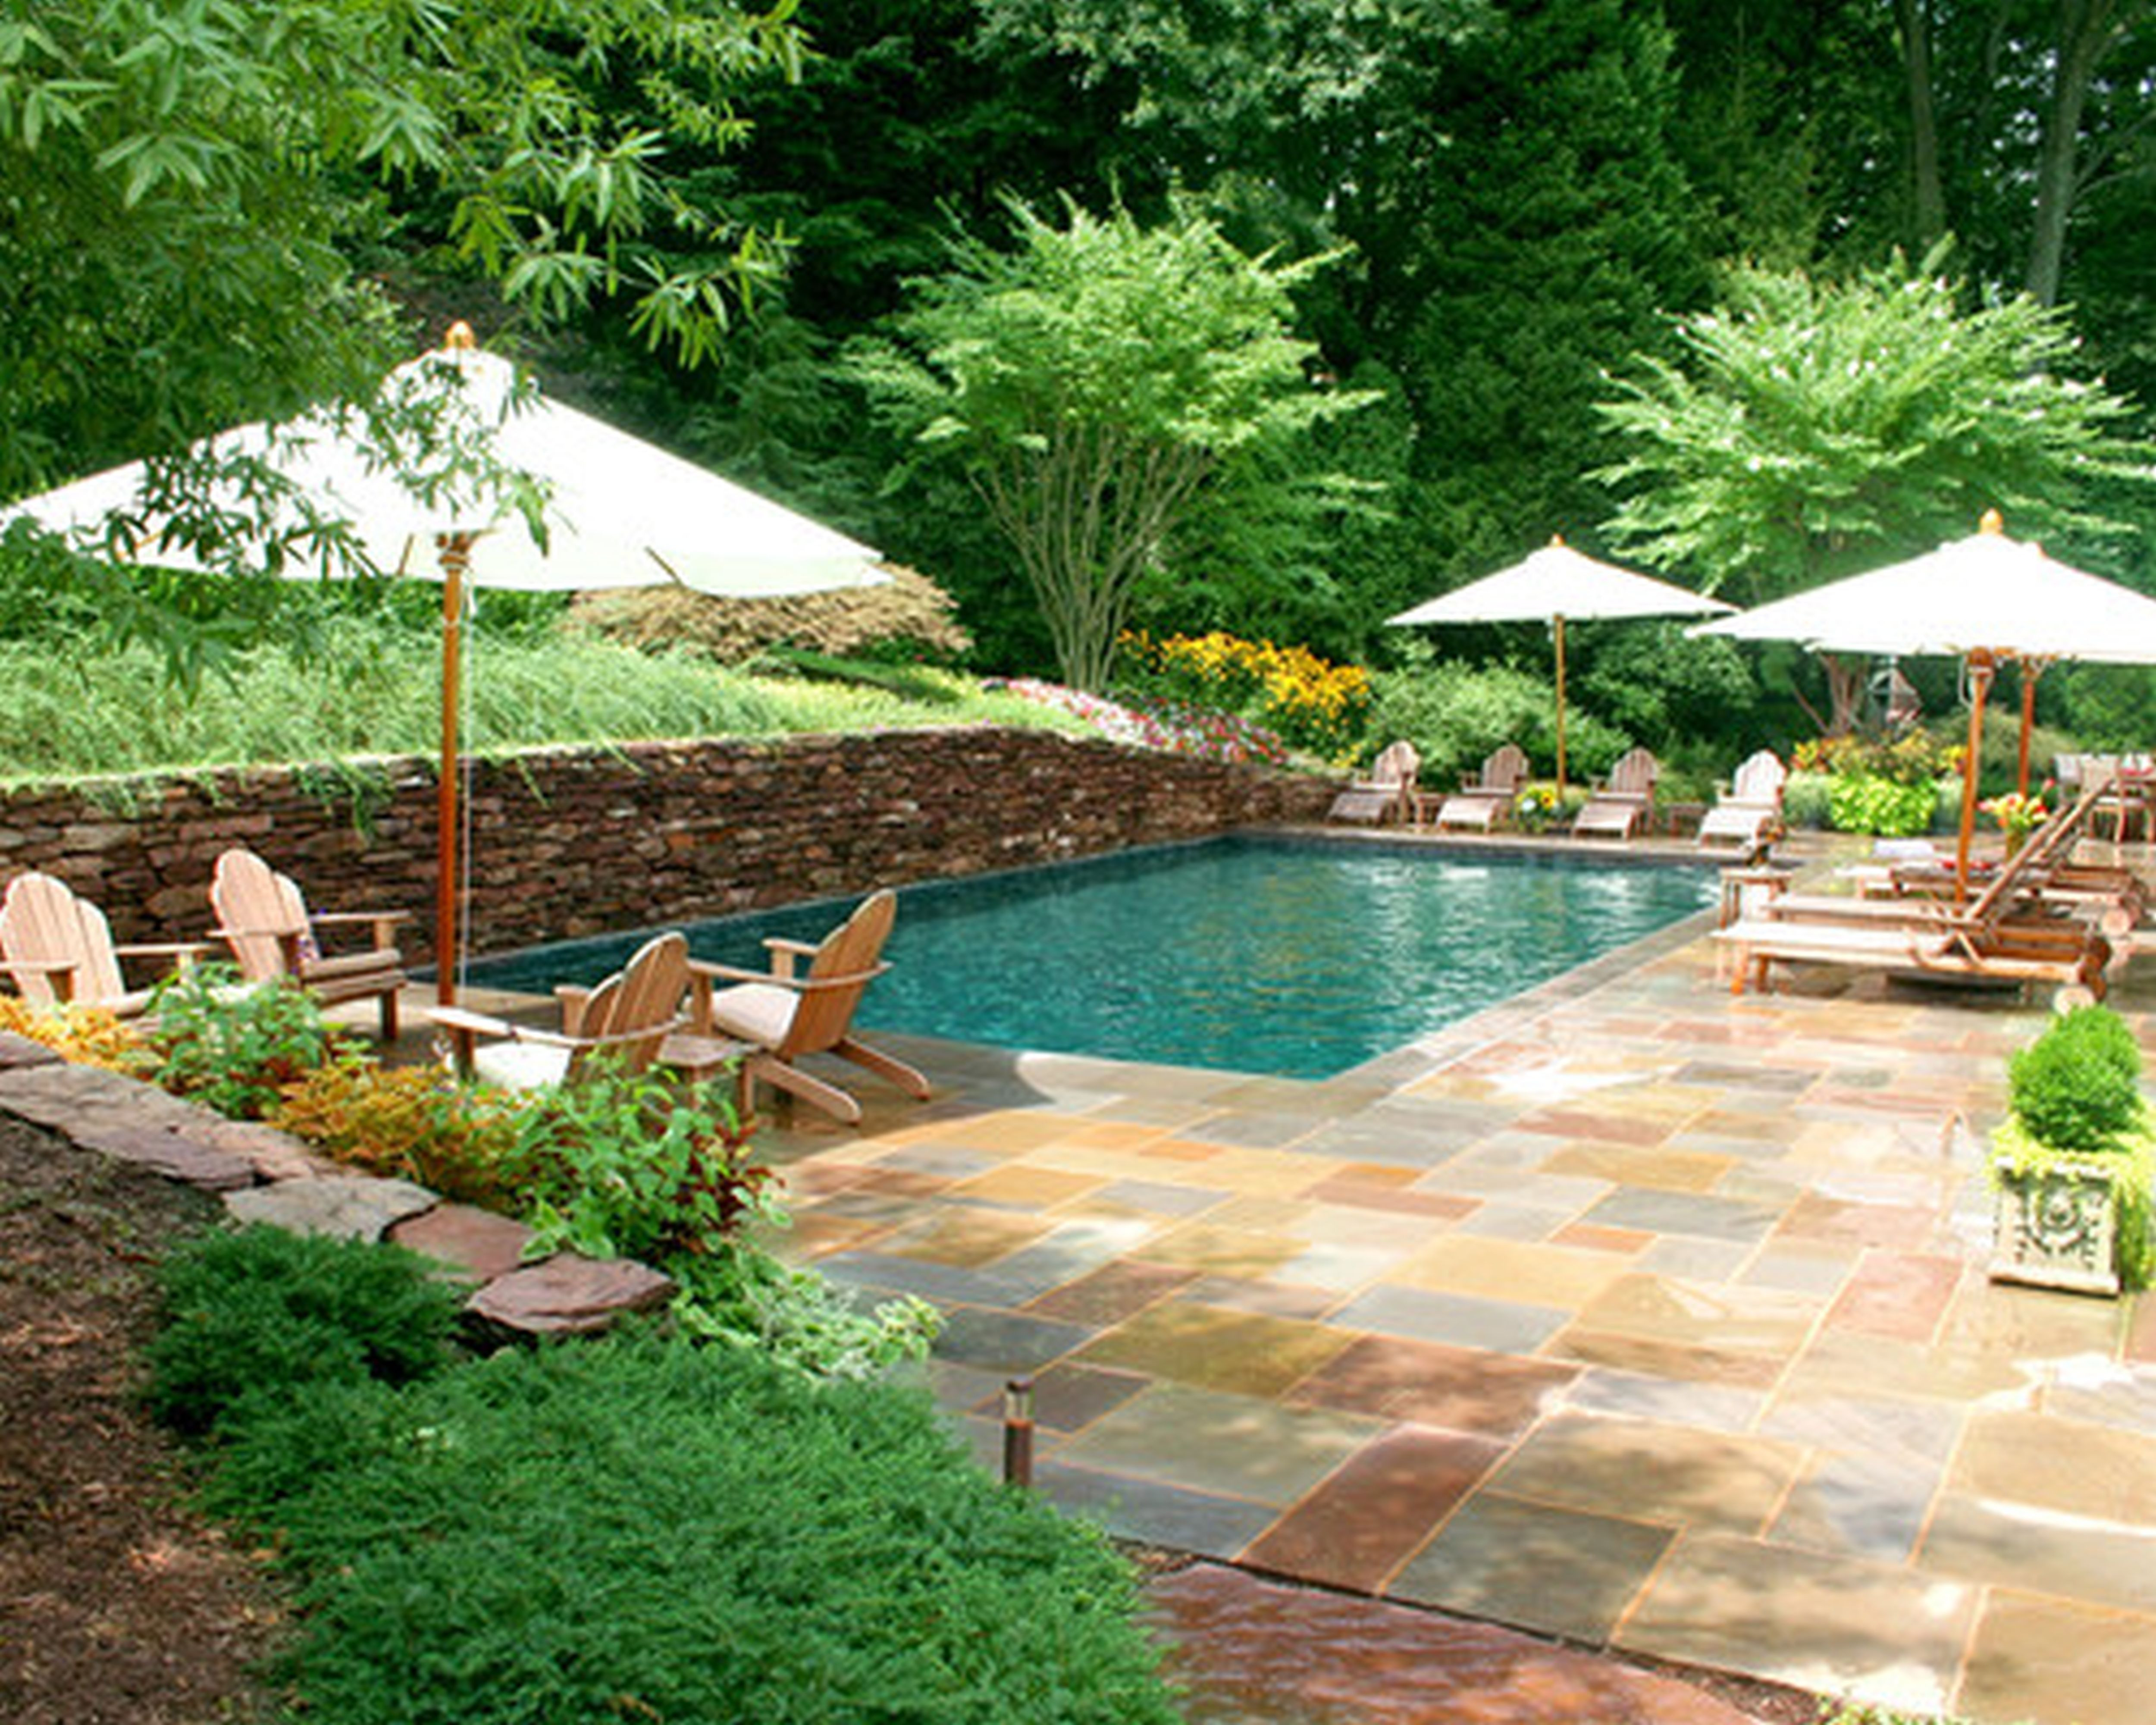 Best ideas about Pool Landscape Design . Save or Pin Designing Your Backyard Swimming Pool Part I of II Now.